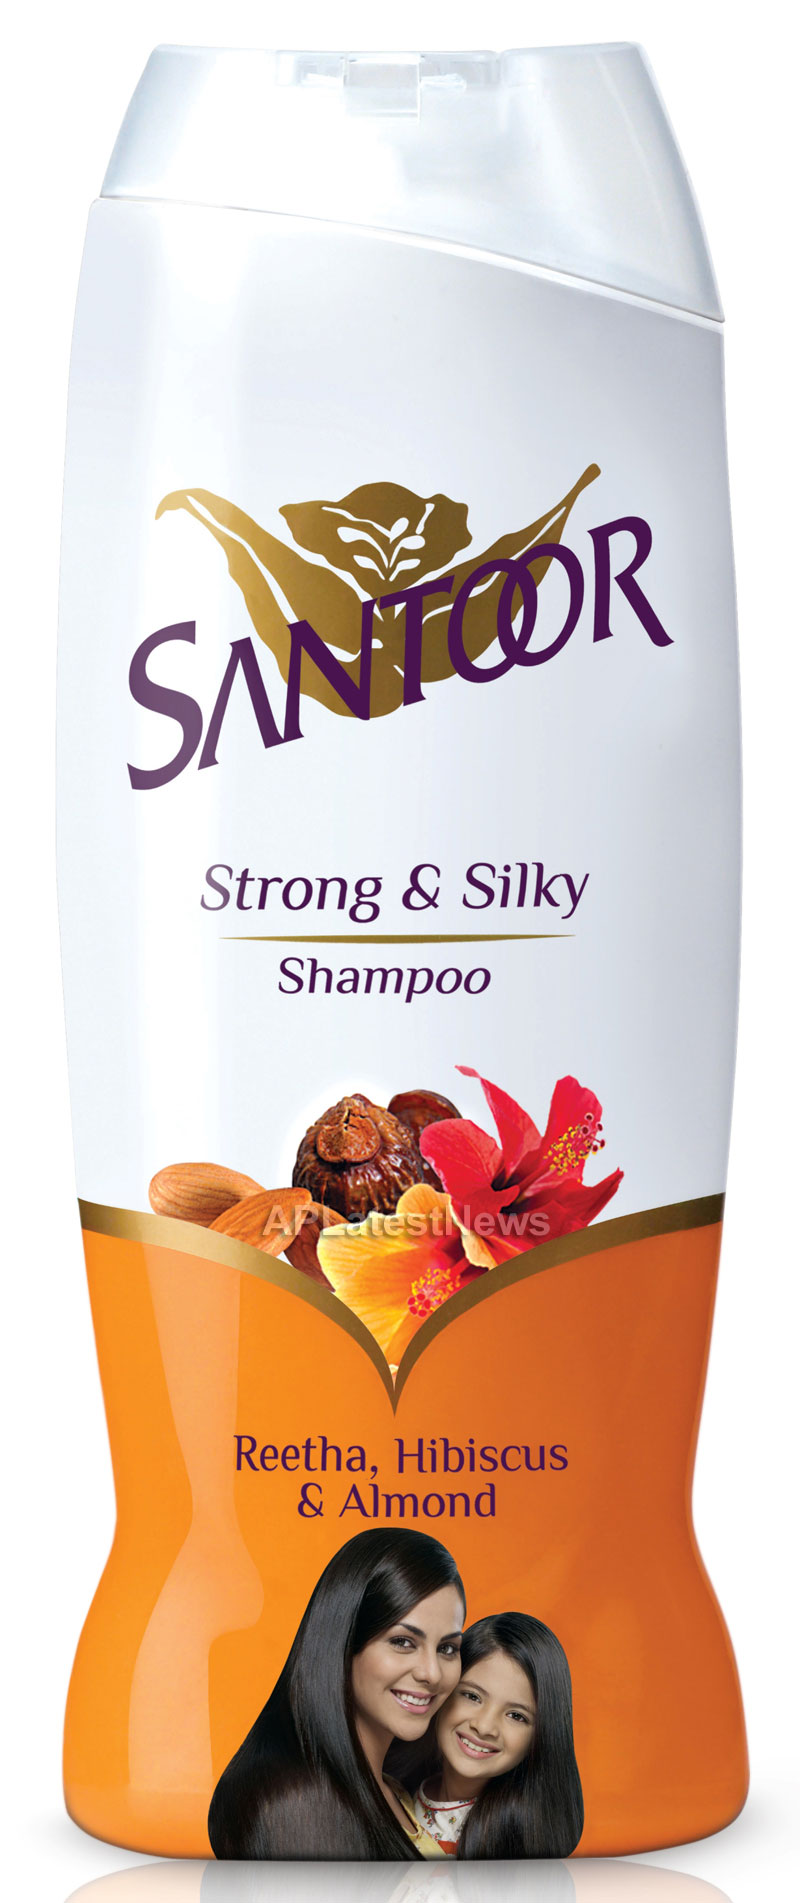 Wipro Consumer Care Launches Santoor Shampoo in Andhra Pradesh - Picture 1